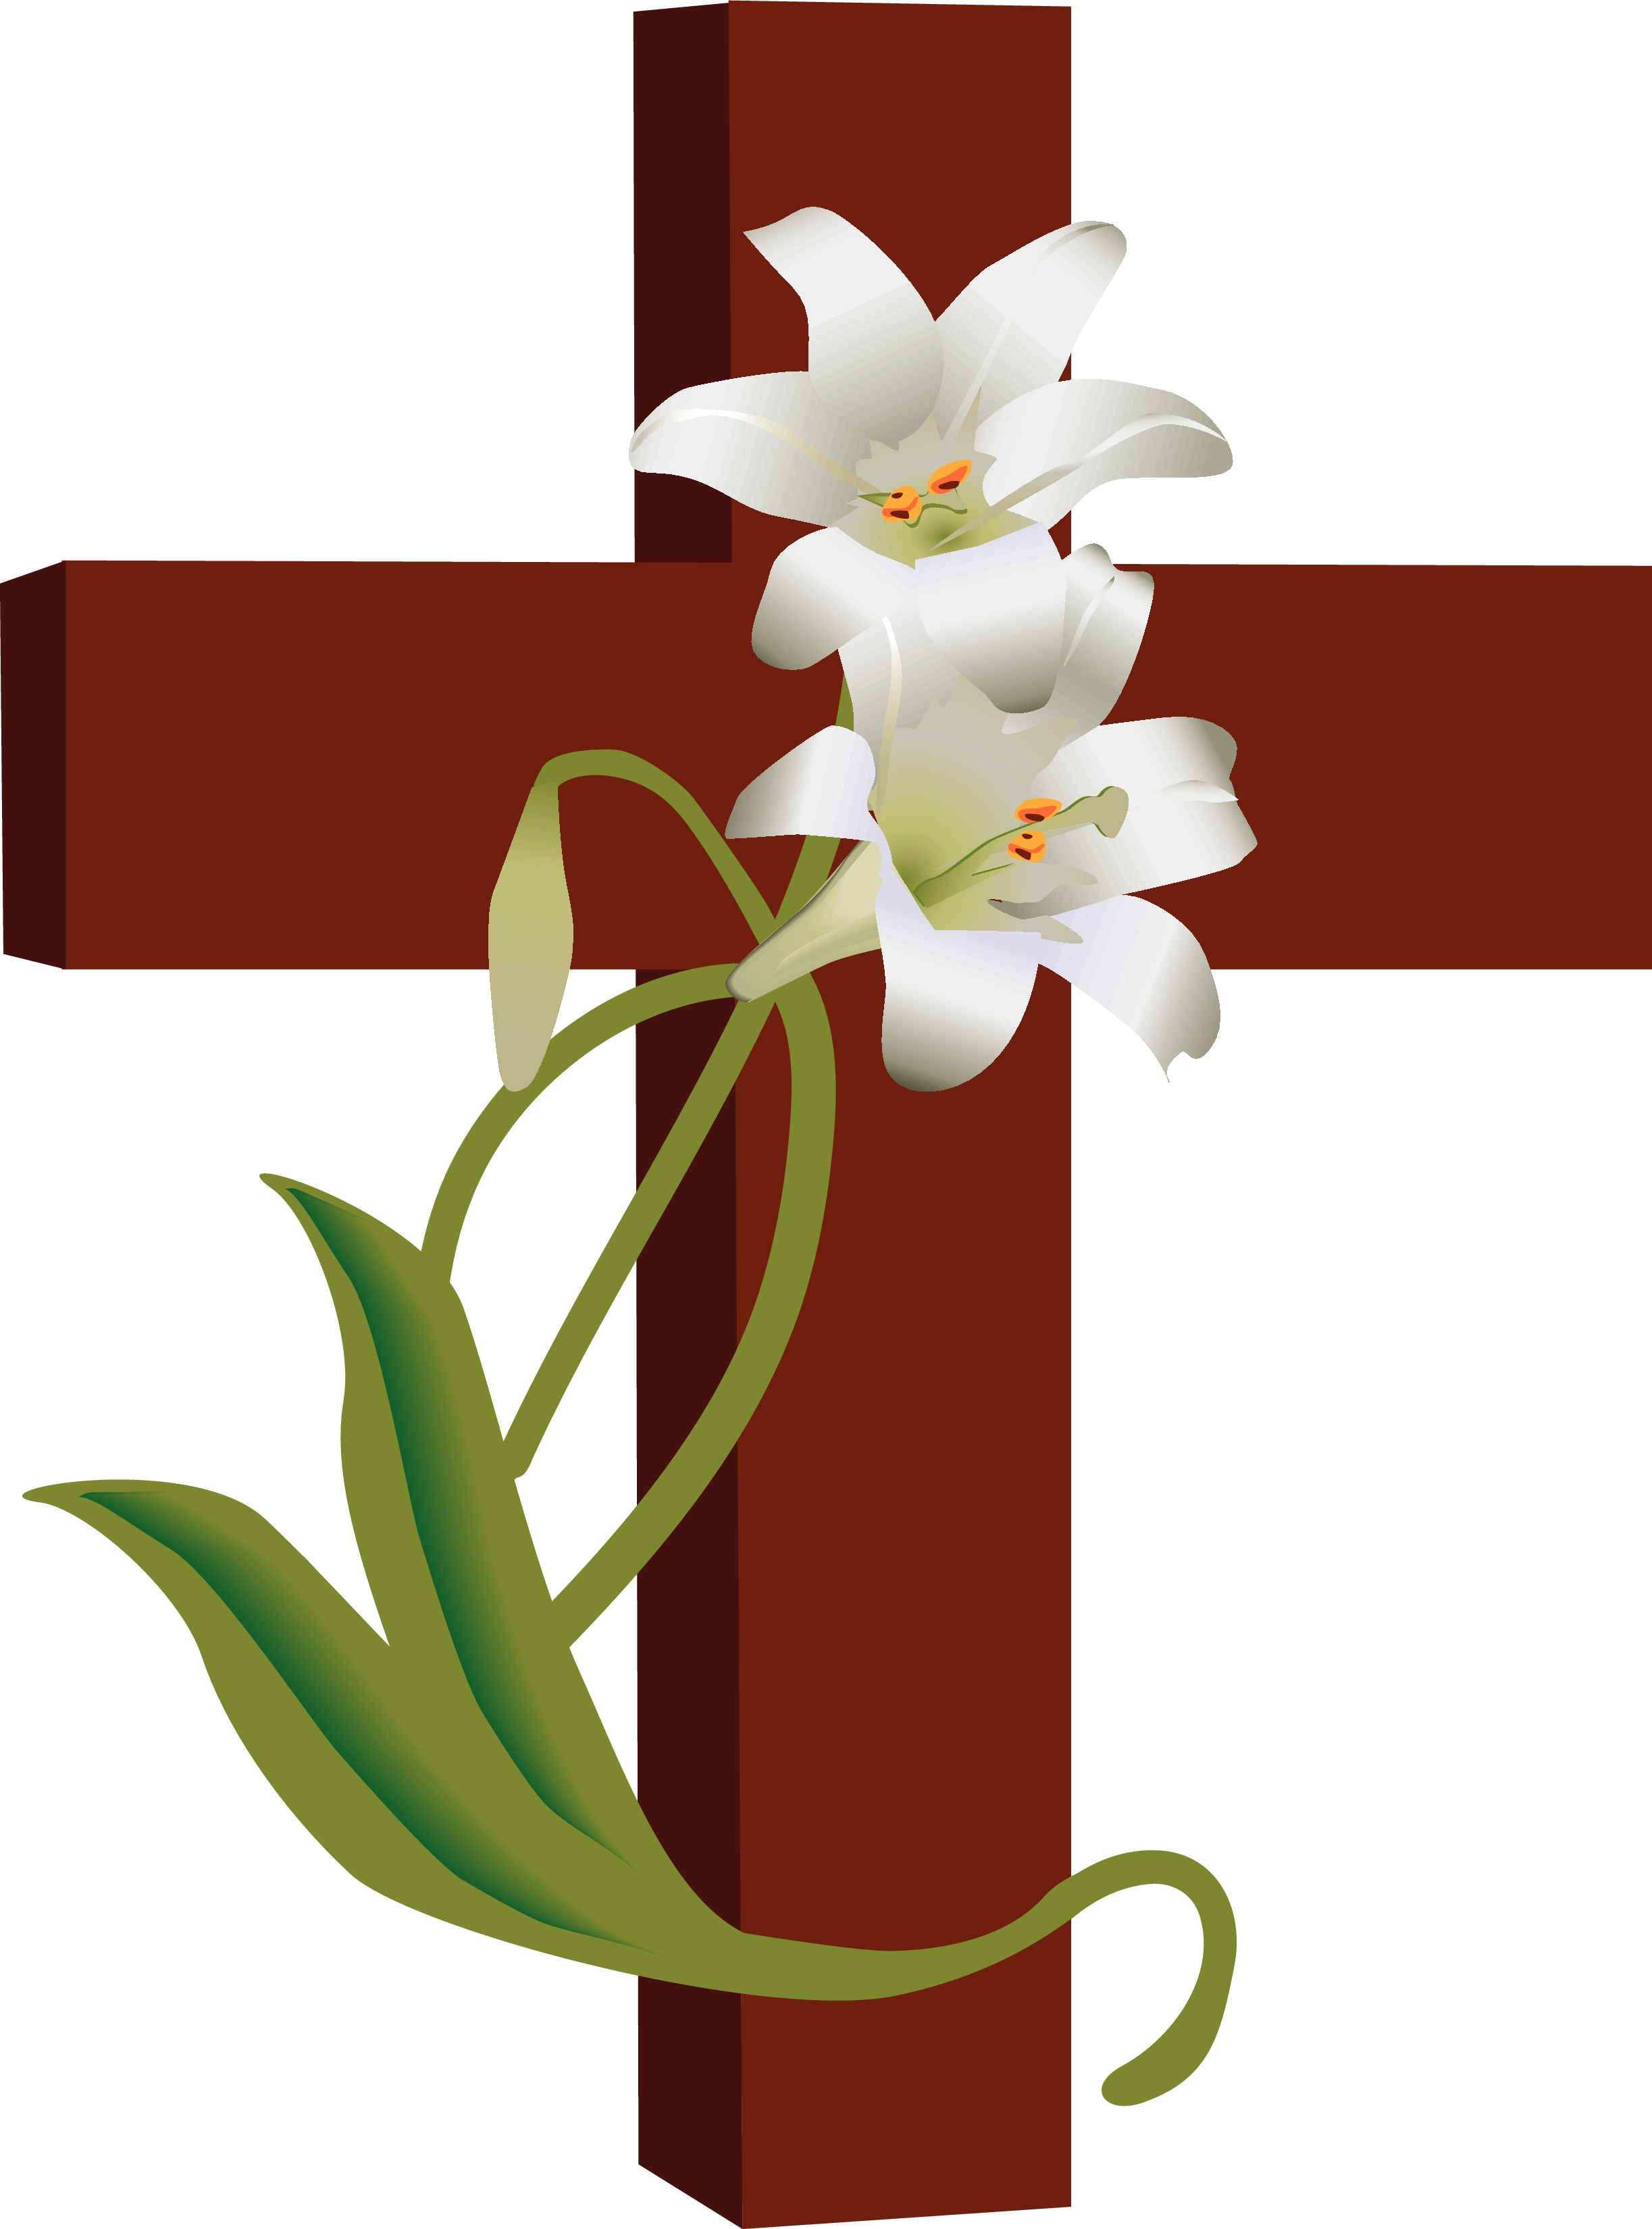 Good friday clipart | Clipart Panda - Free Clipart Images